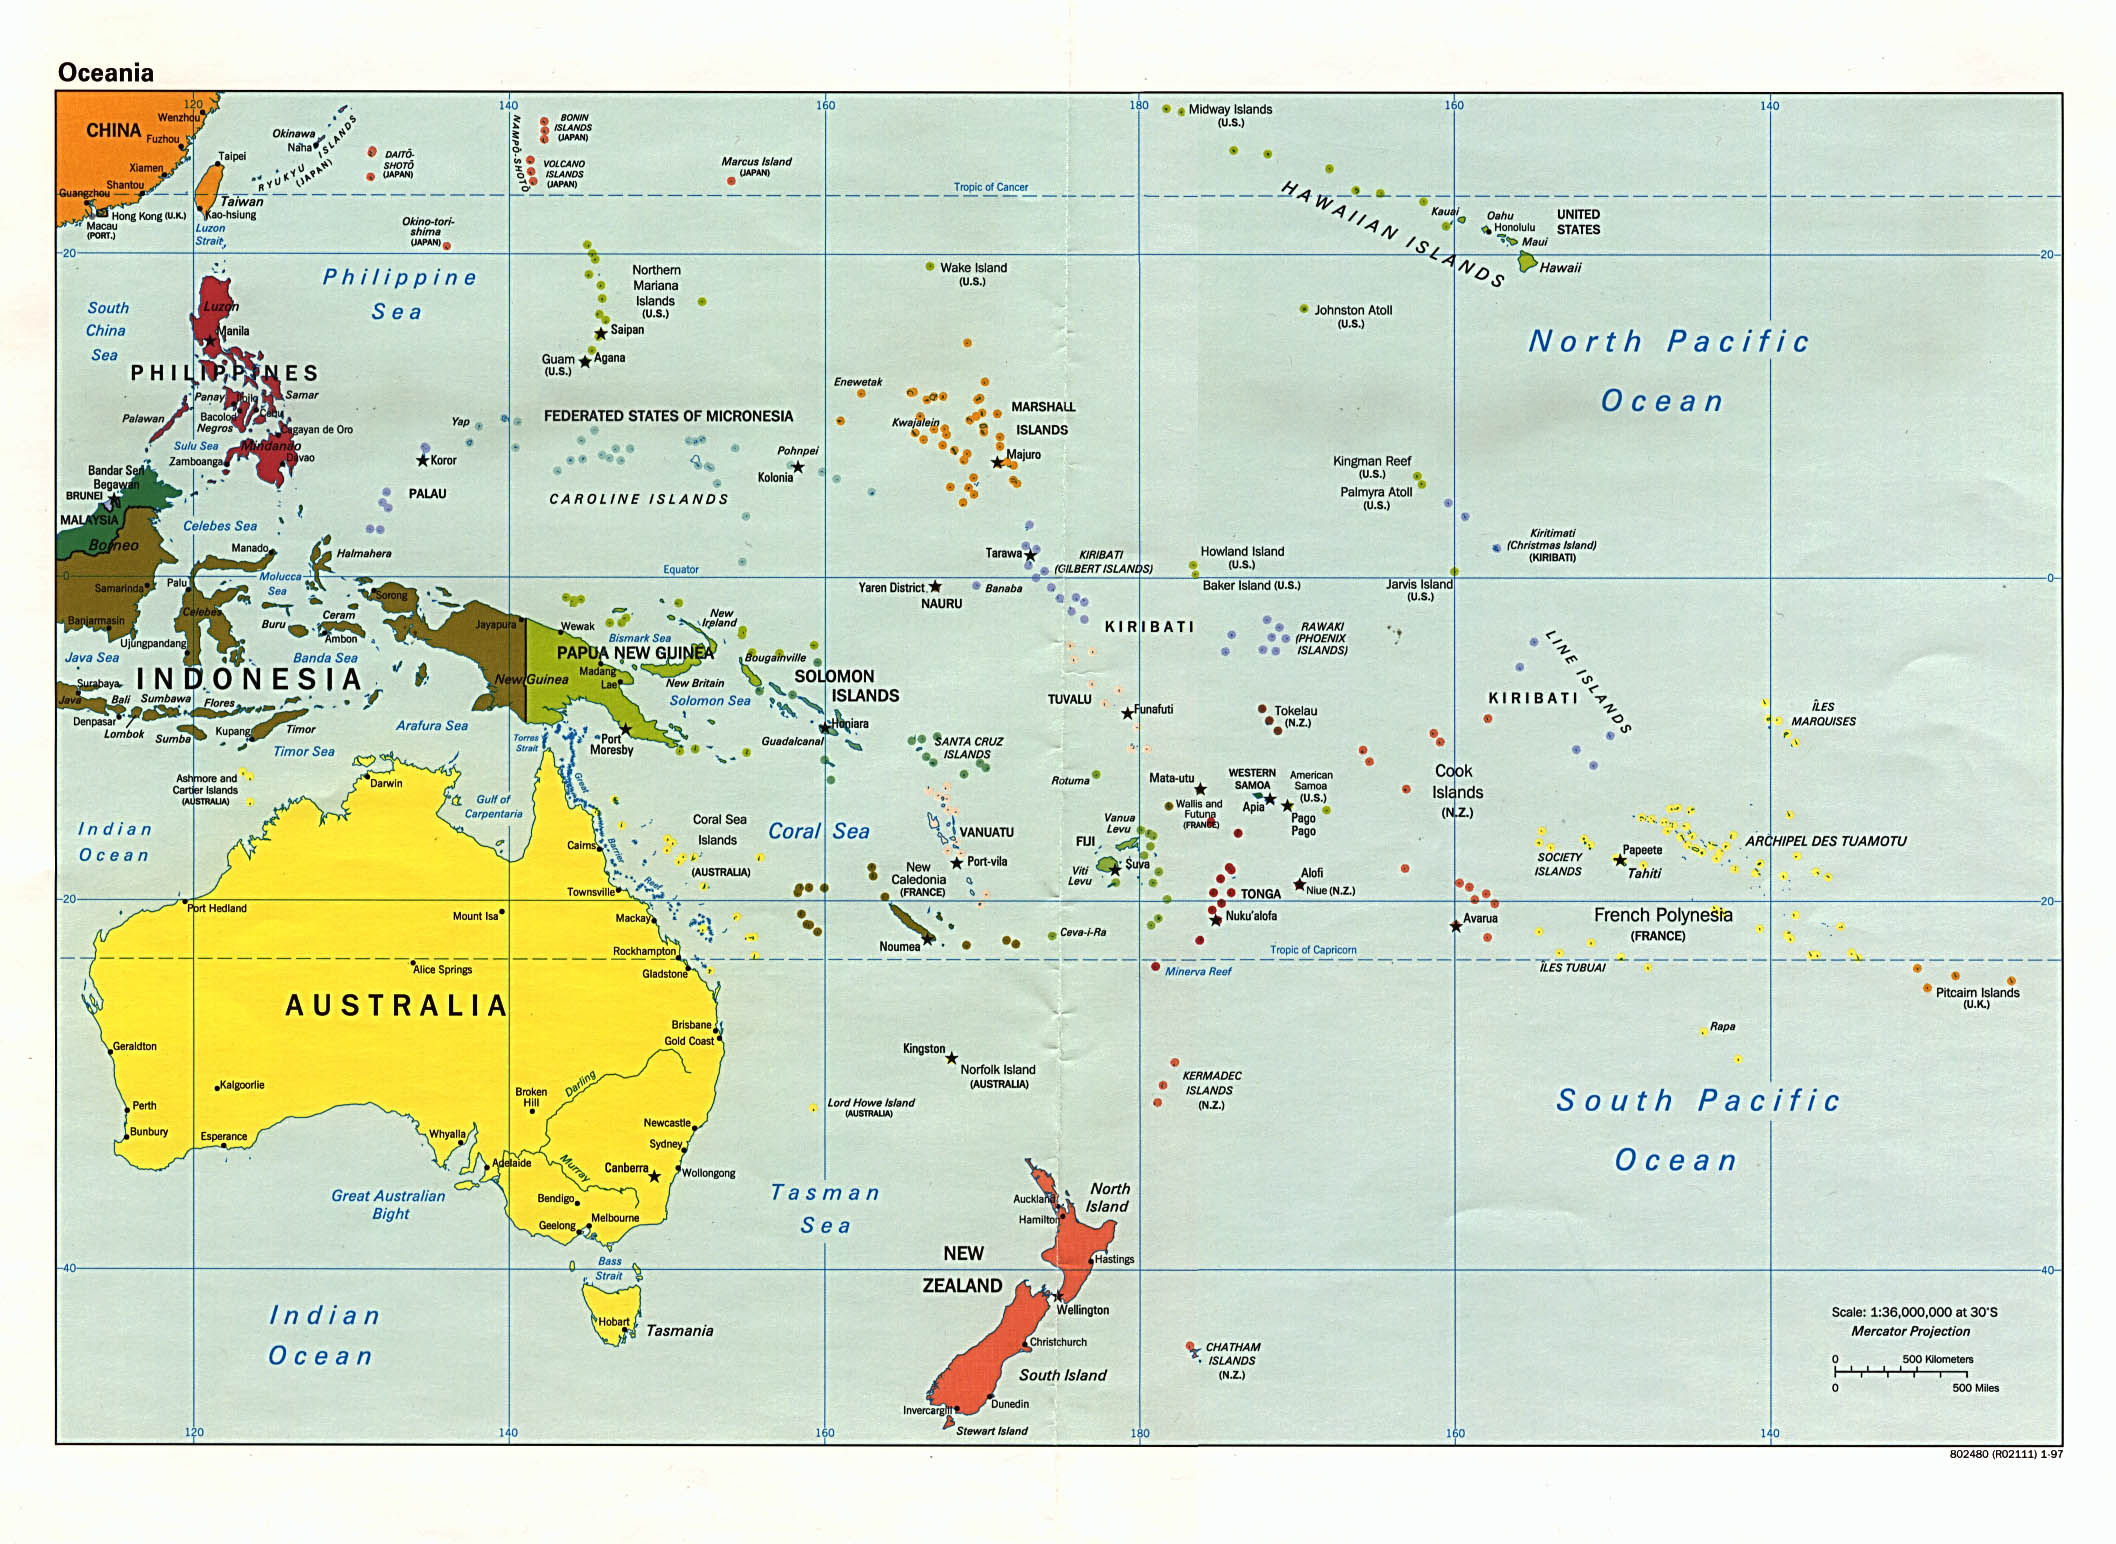 Oceania - categories of maps